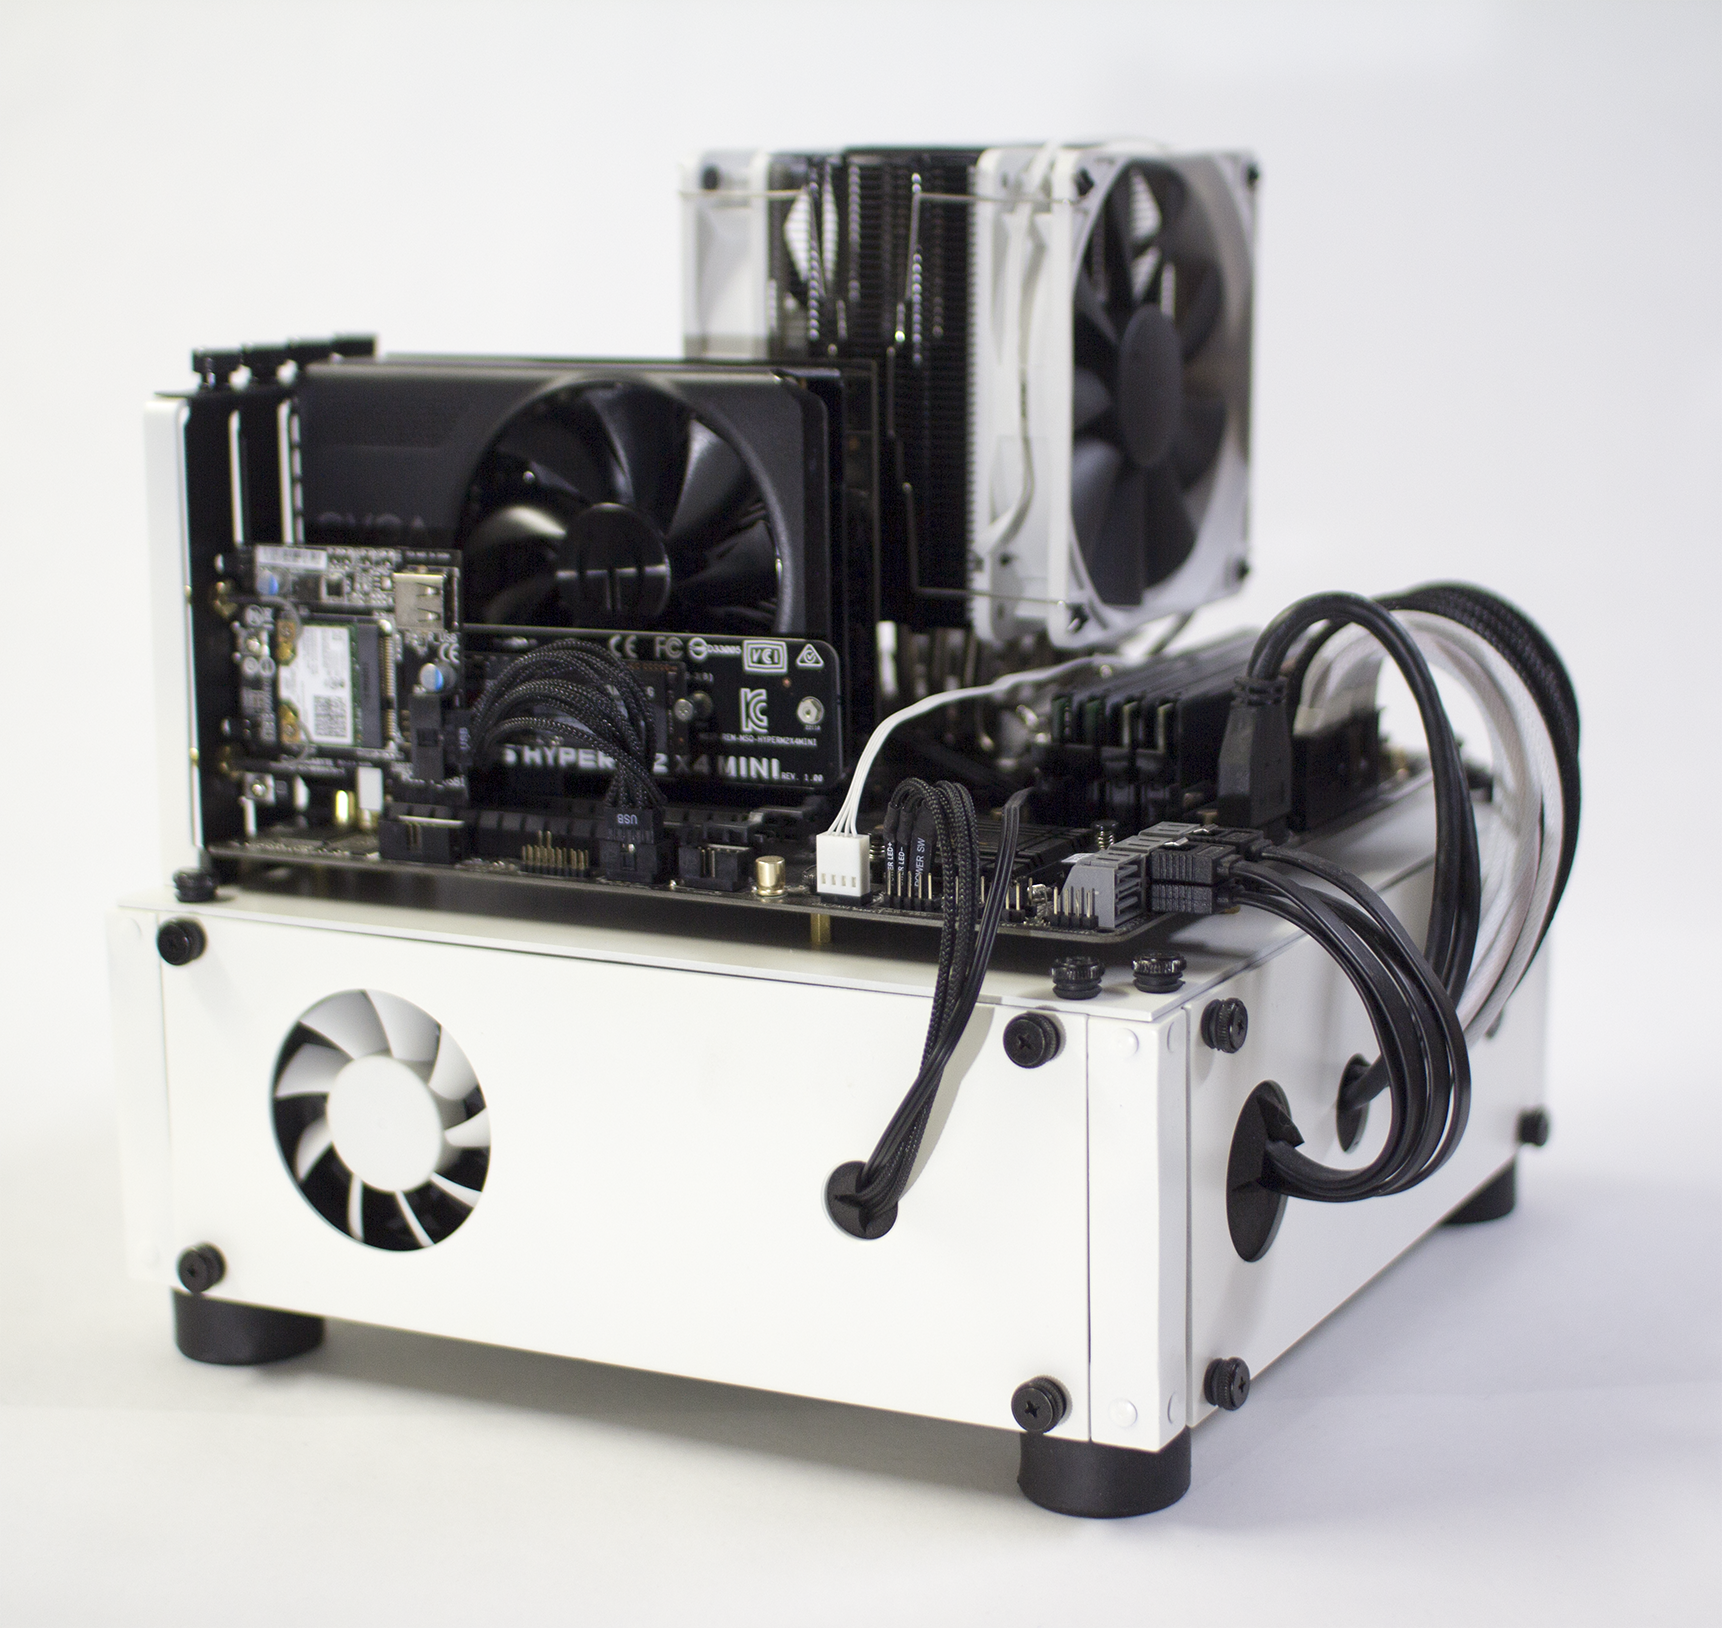 build of the week open air testbench pc gamer